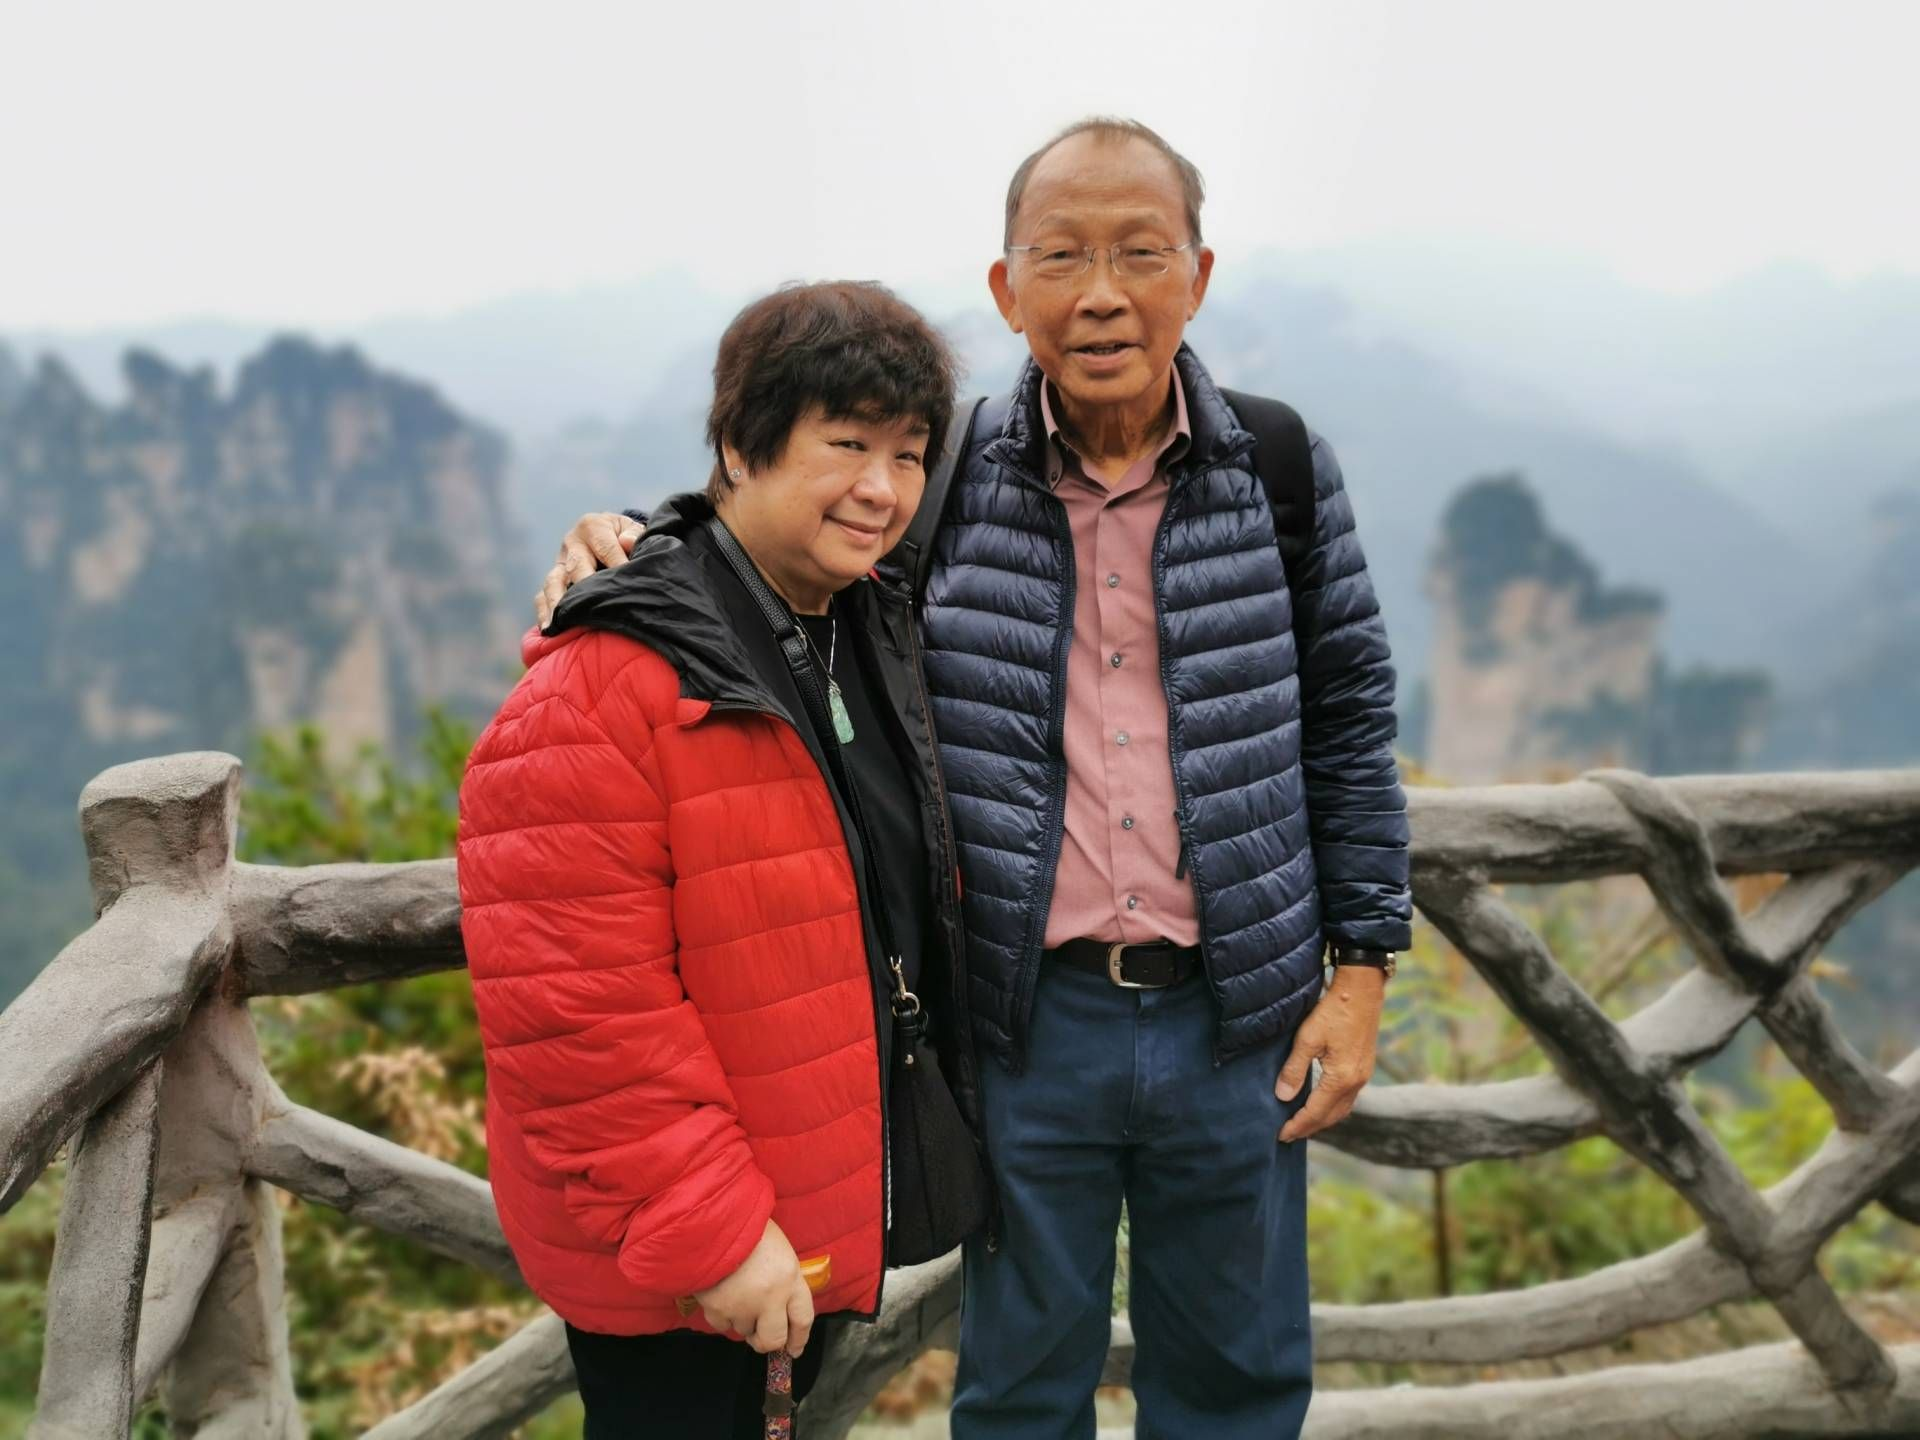 Cancer survivor Wong and his wife, Chen Ooi Khoon, on a recent holiday at Zhangjiajie National Park in Hunan, China.